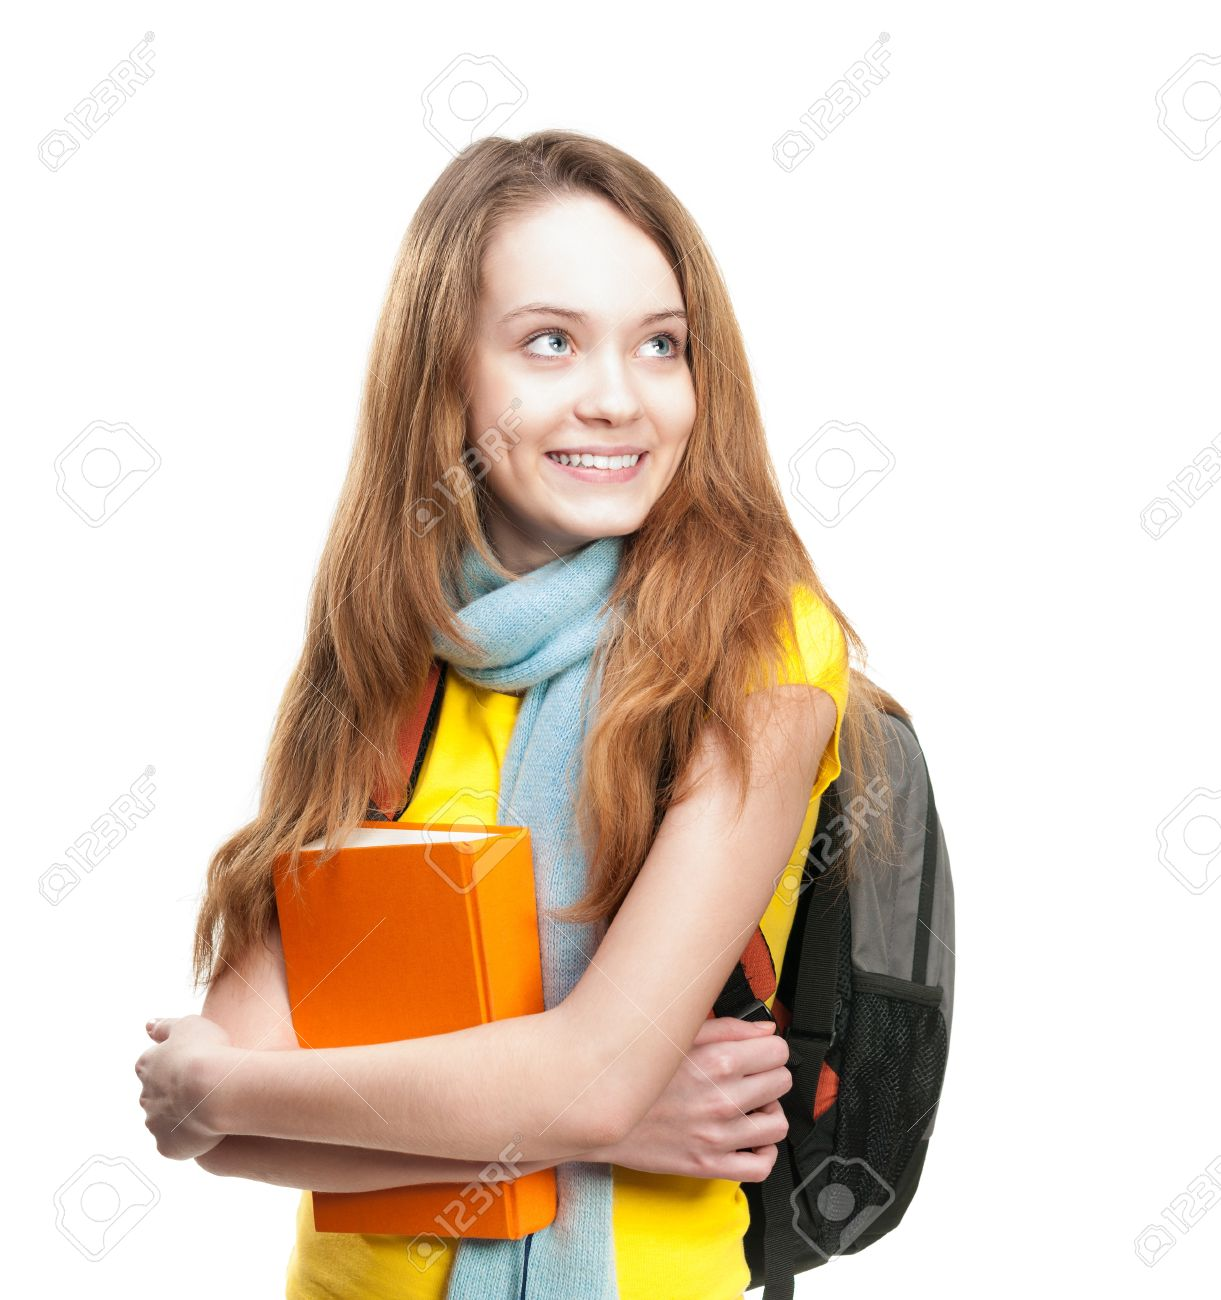 Stock photos pictures royalty. A girl holding a book